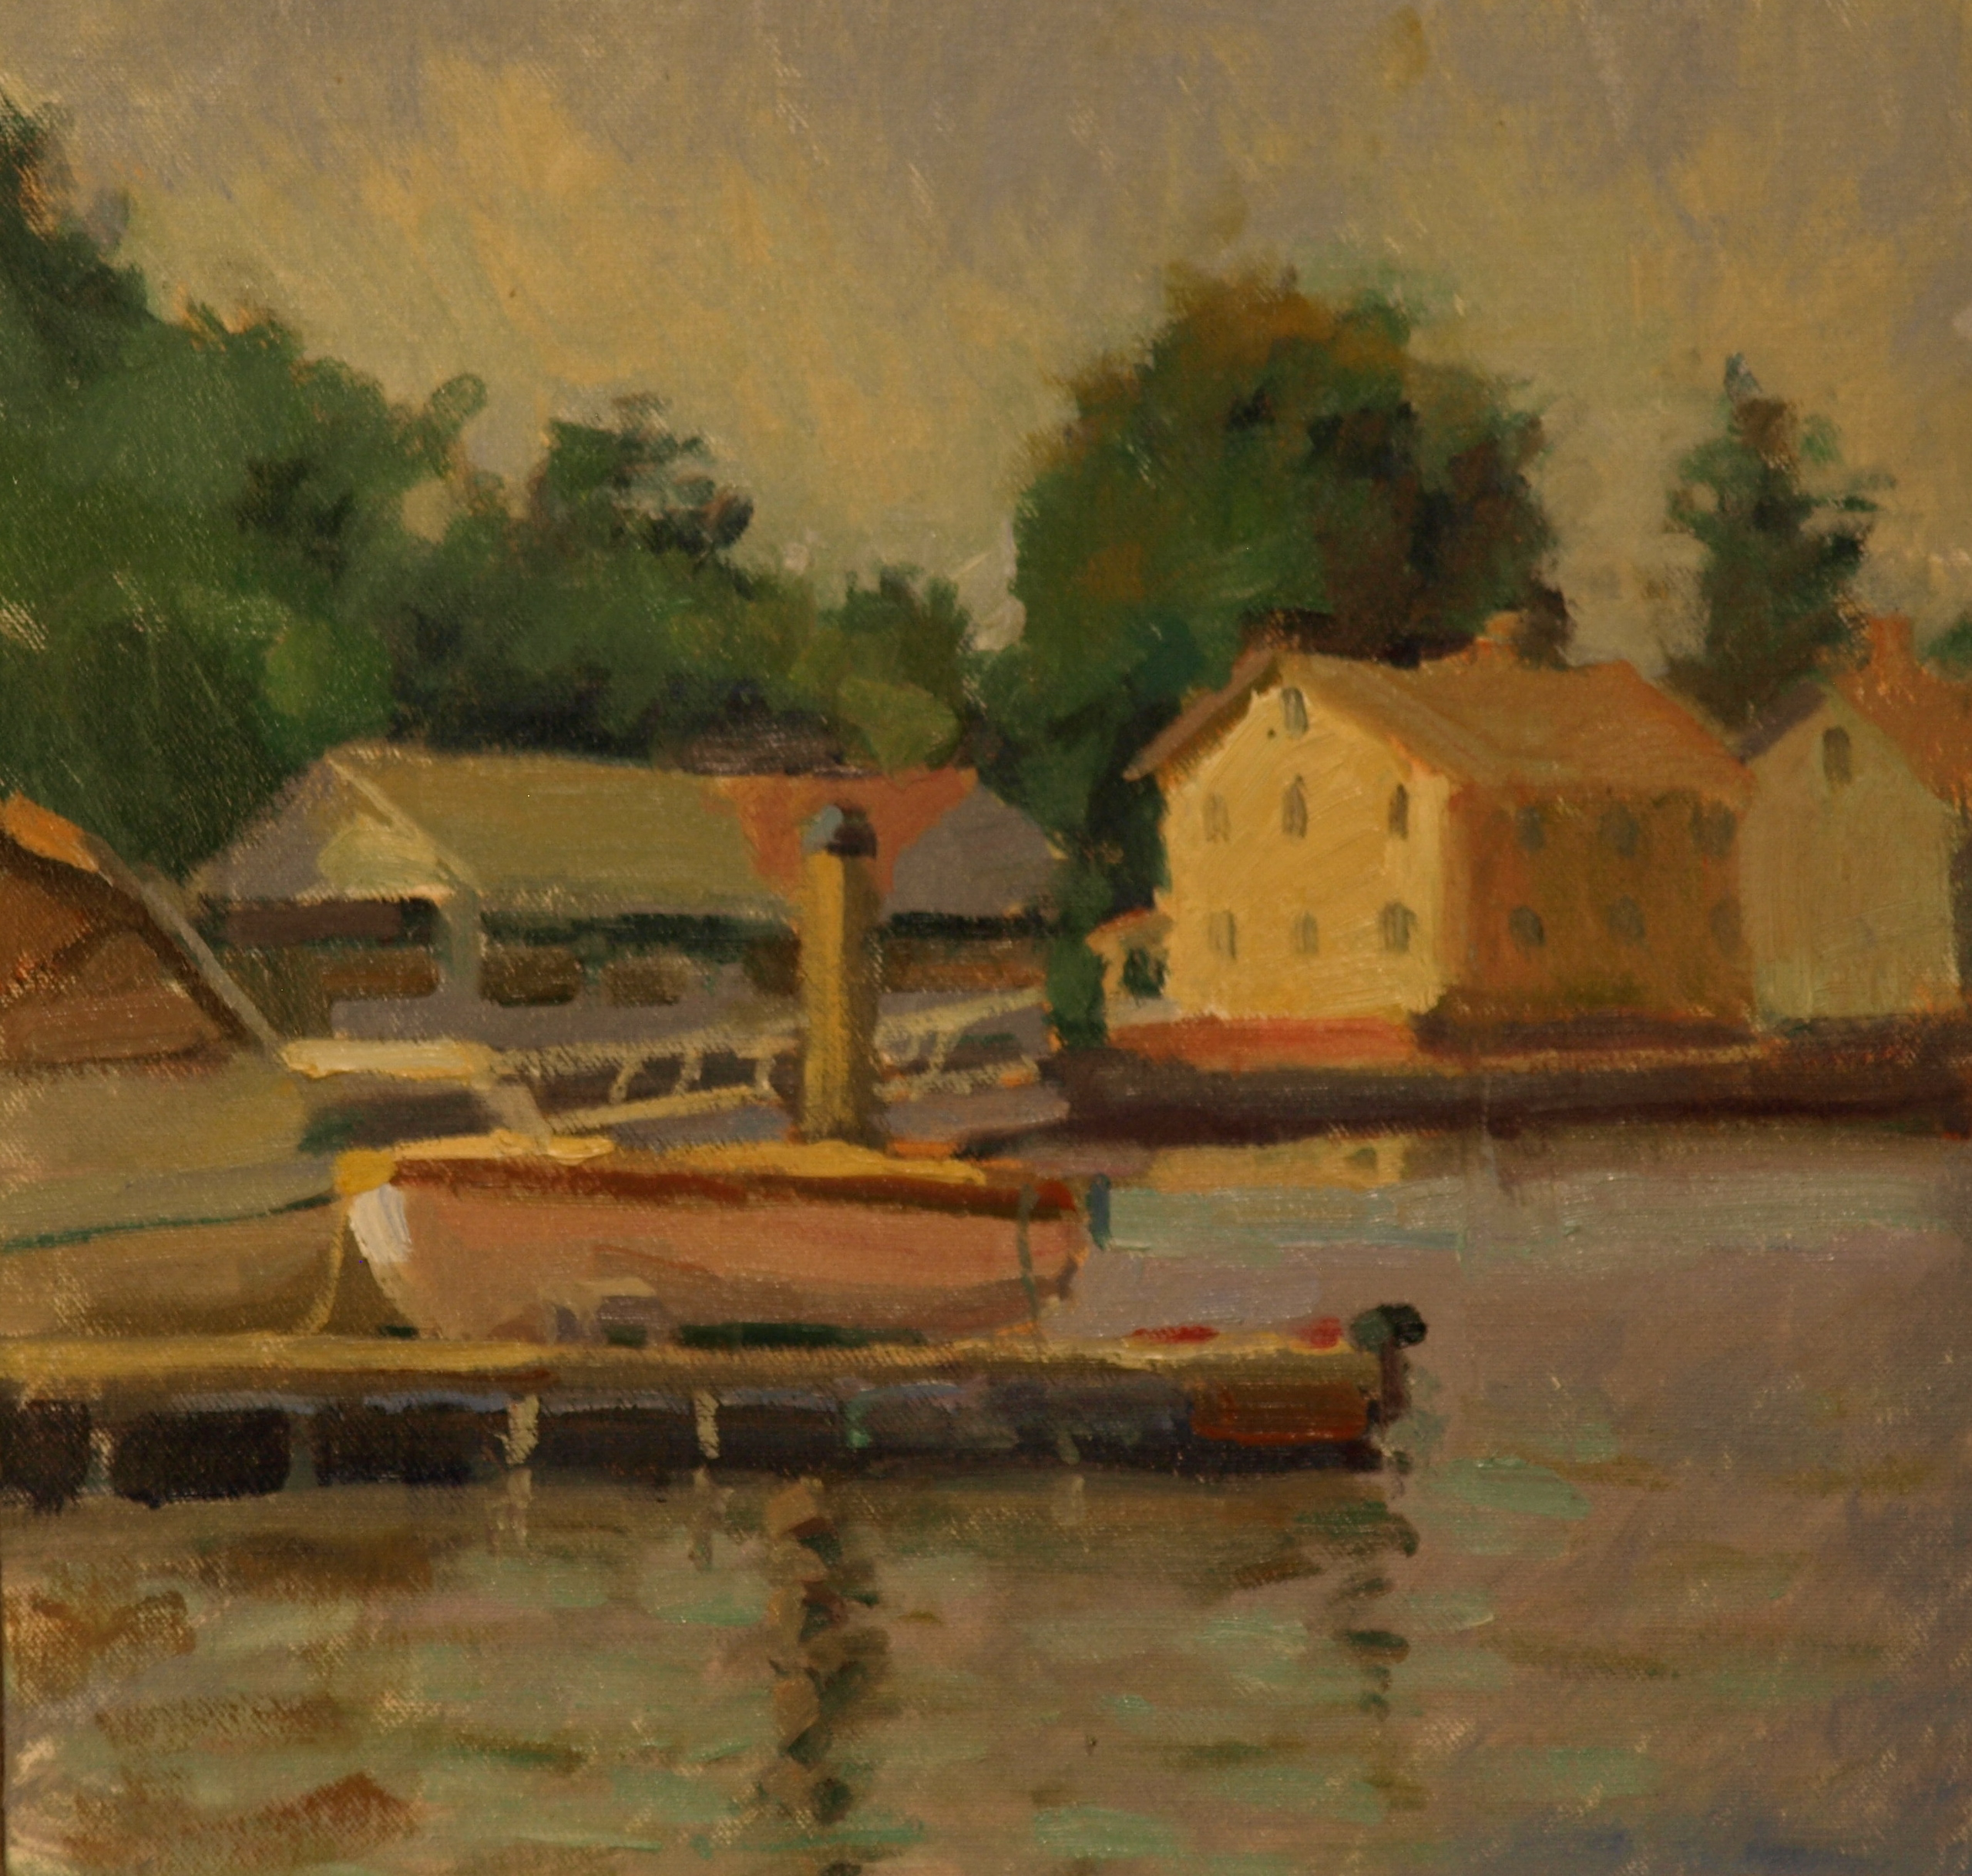 Dock - Mystic River, Oil on Canvas on Panel, 12 x 12 Inches, by Susan Grisell, $300